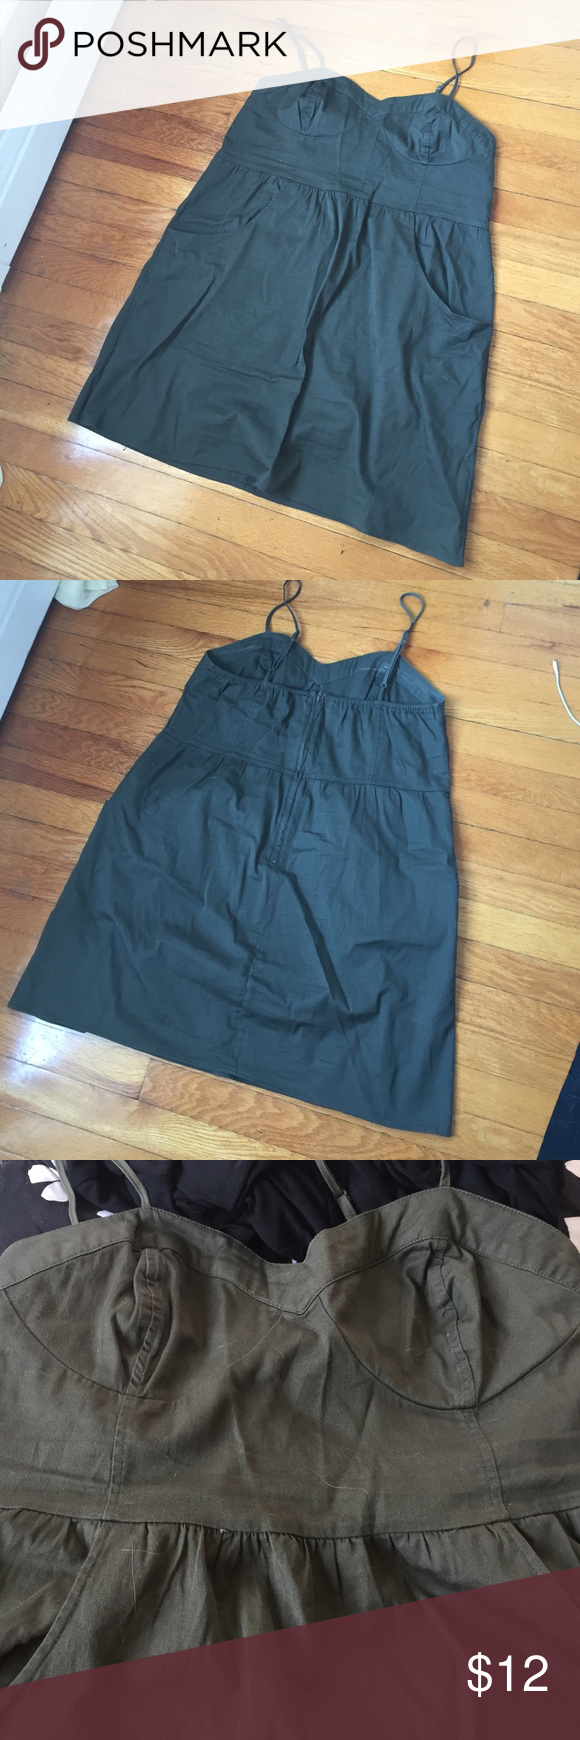 Army green dress Cute army green dress. Two front pockets. Back zip. Bustier type top (see photo). Hits above the knee. Mossimo Supply Co Dresses